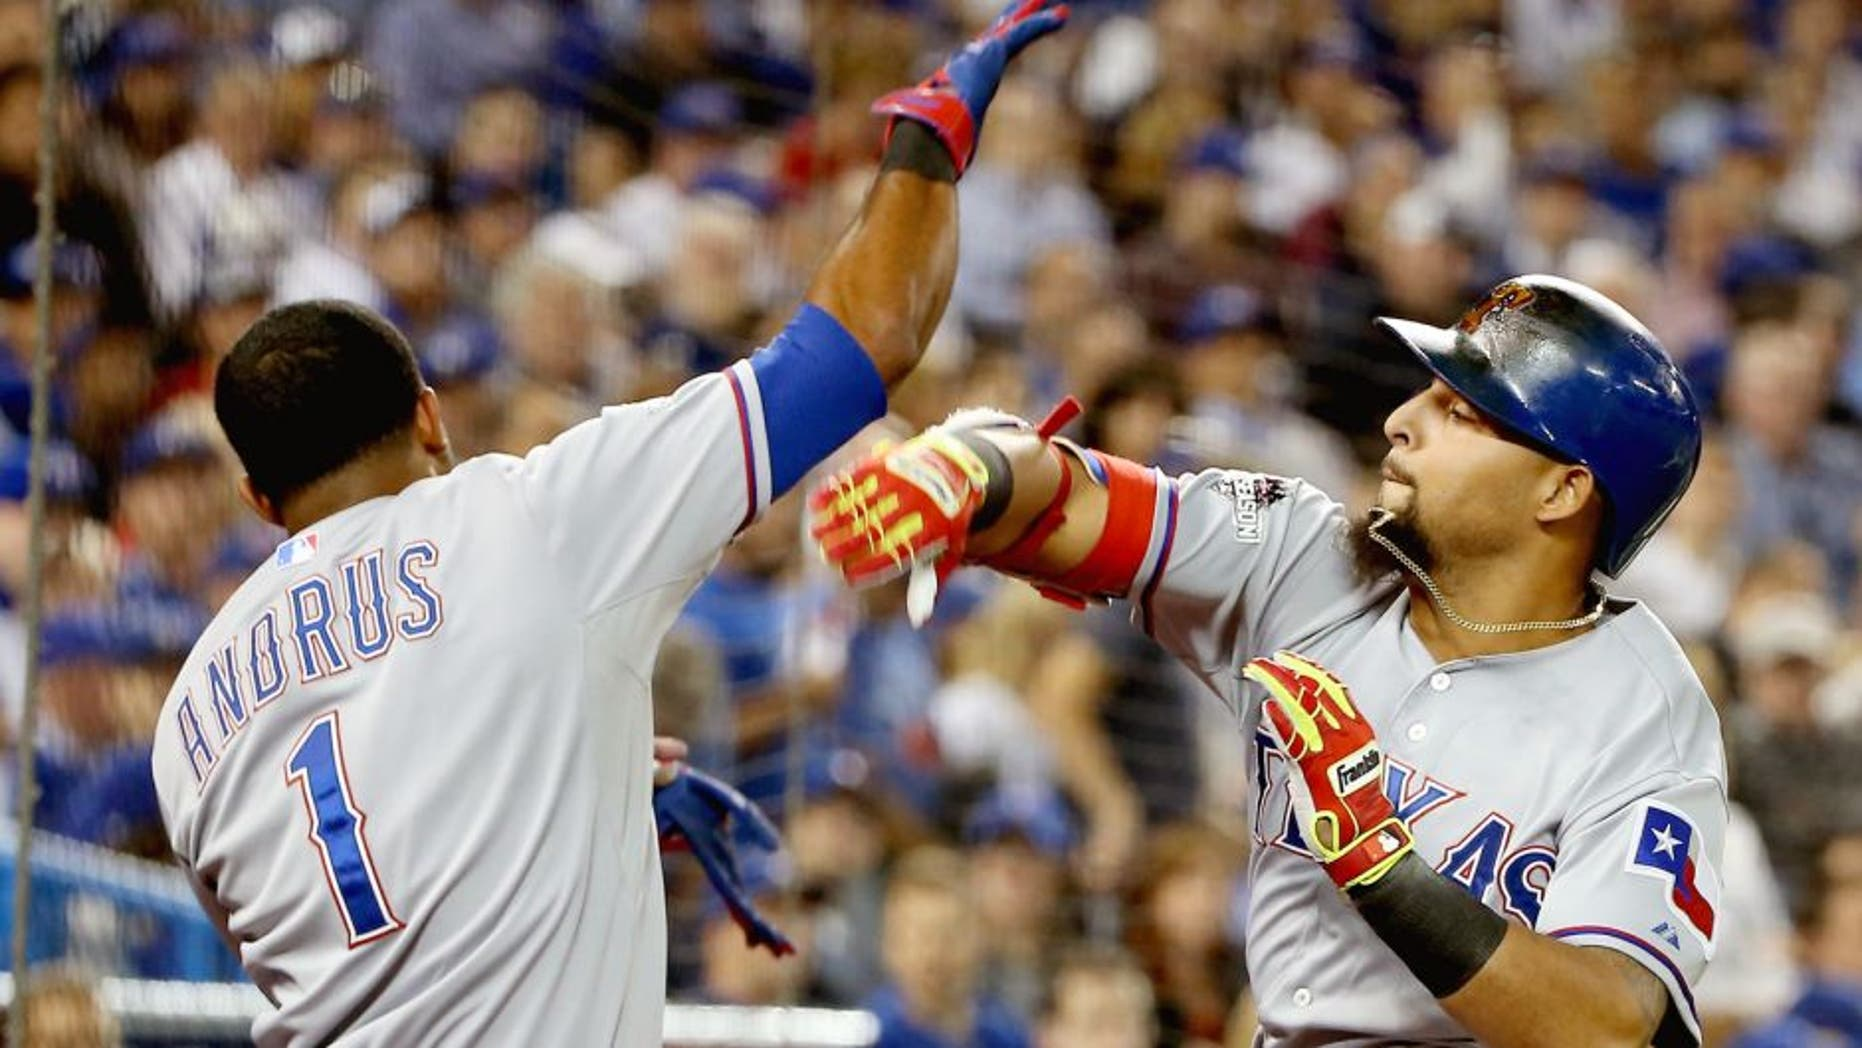 Rougned Odor #12 of the Texas Rangers celebrates with teammate Elvis Andrus #1 after scoring a solo home run against David Price #14 of the Toronto Blue Jays in the seventh inning during game one of the American League Division Series at Rogers Centre on October 8, 2015 in Toronto, Ontario, Canada. (Photo by Tom Szczerbowski/Getty Images)